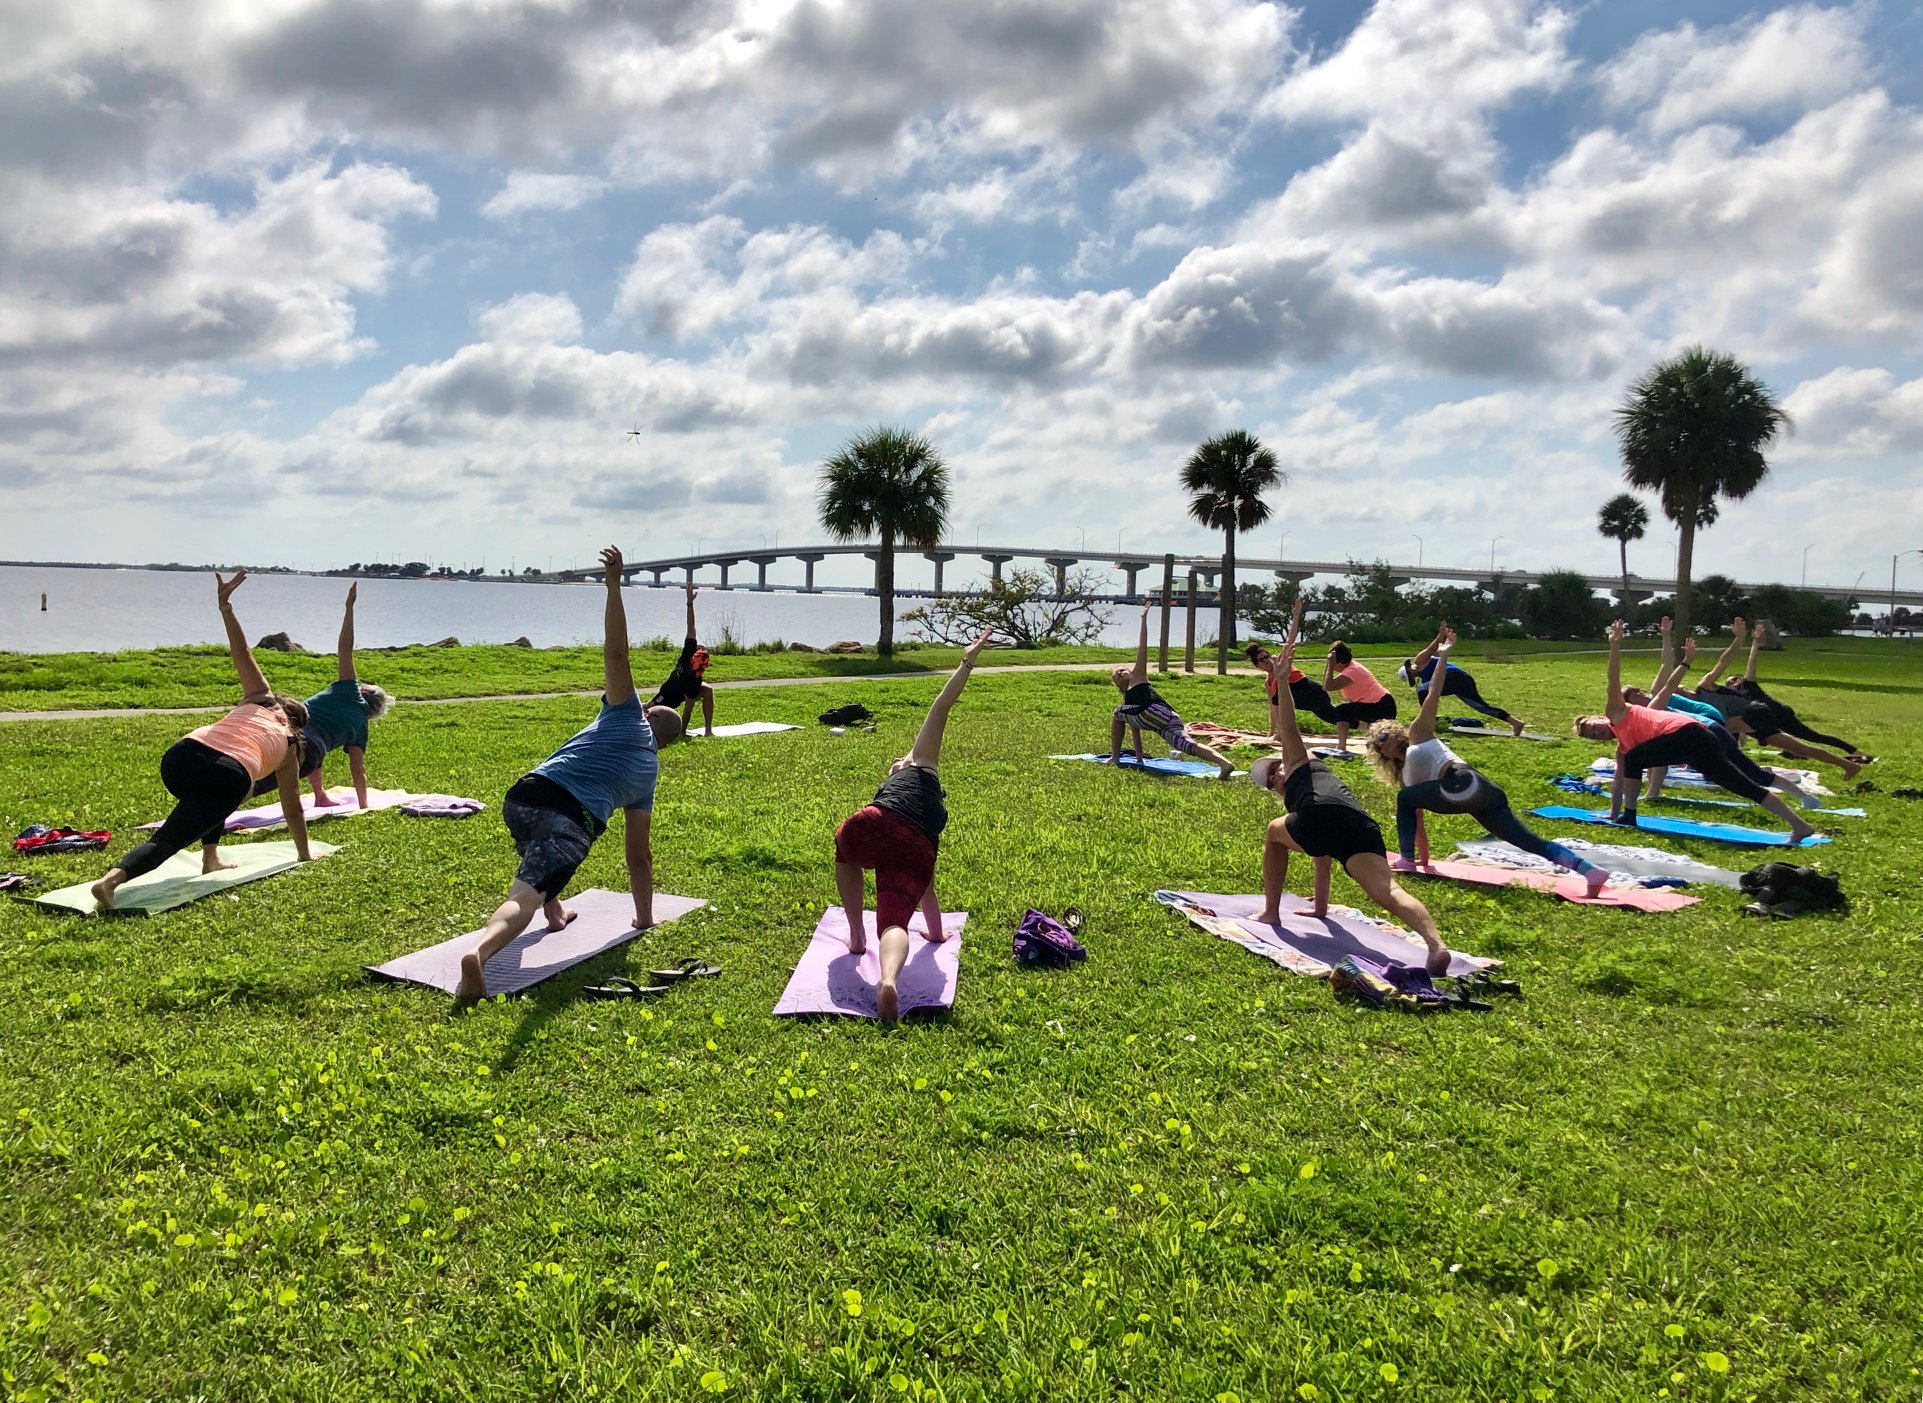 Titusville Yoga in the Park Sundays 9AM Sponsored by The Titusville Yoga Loft at Sand Point Park 101 N Washington Ave, Titusville, Florida 4.jpg